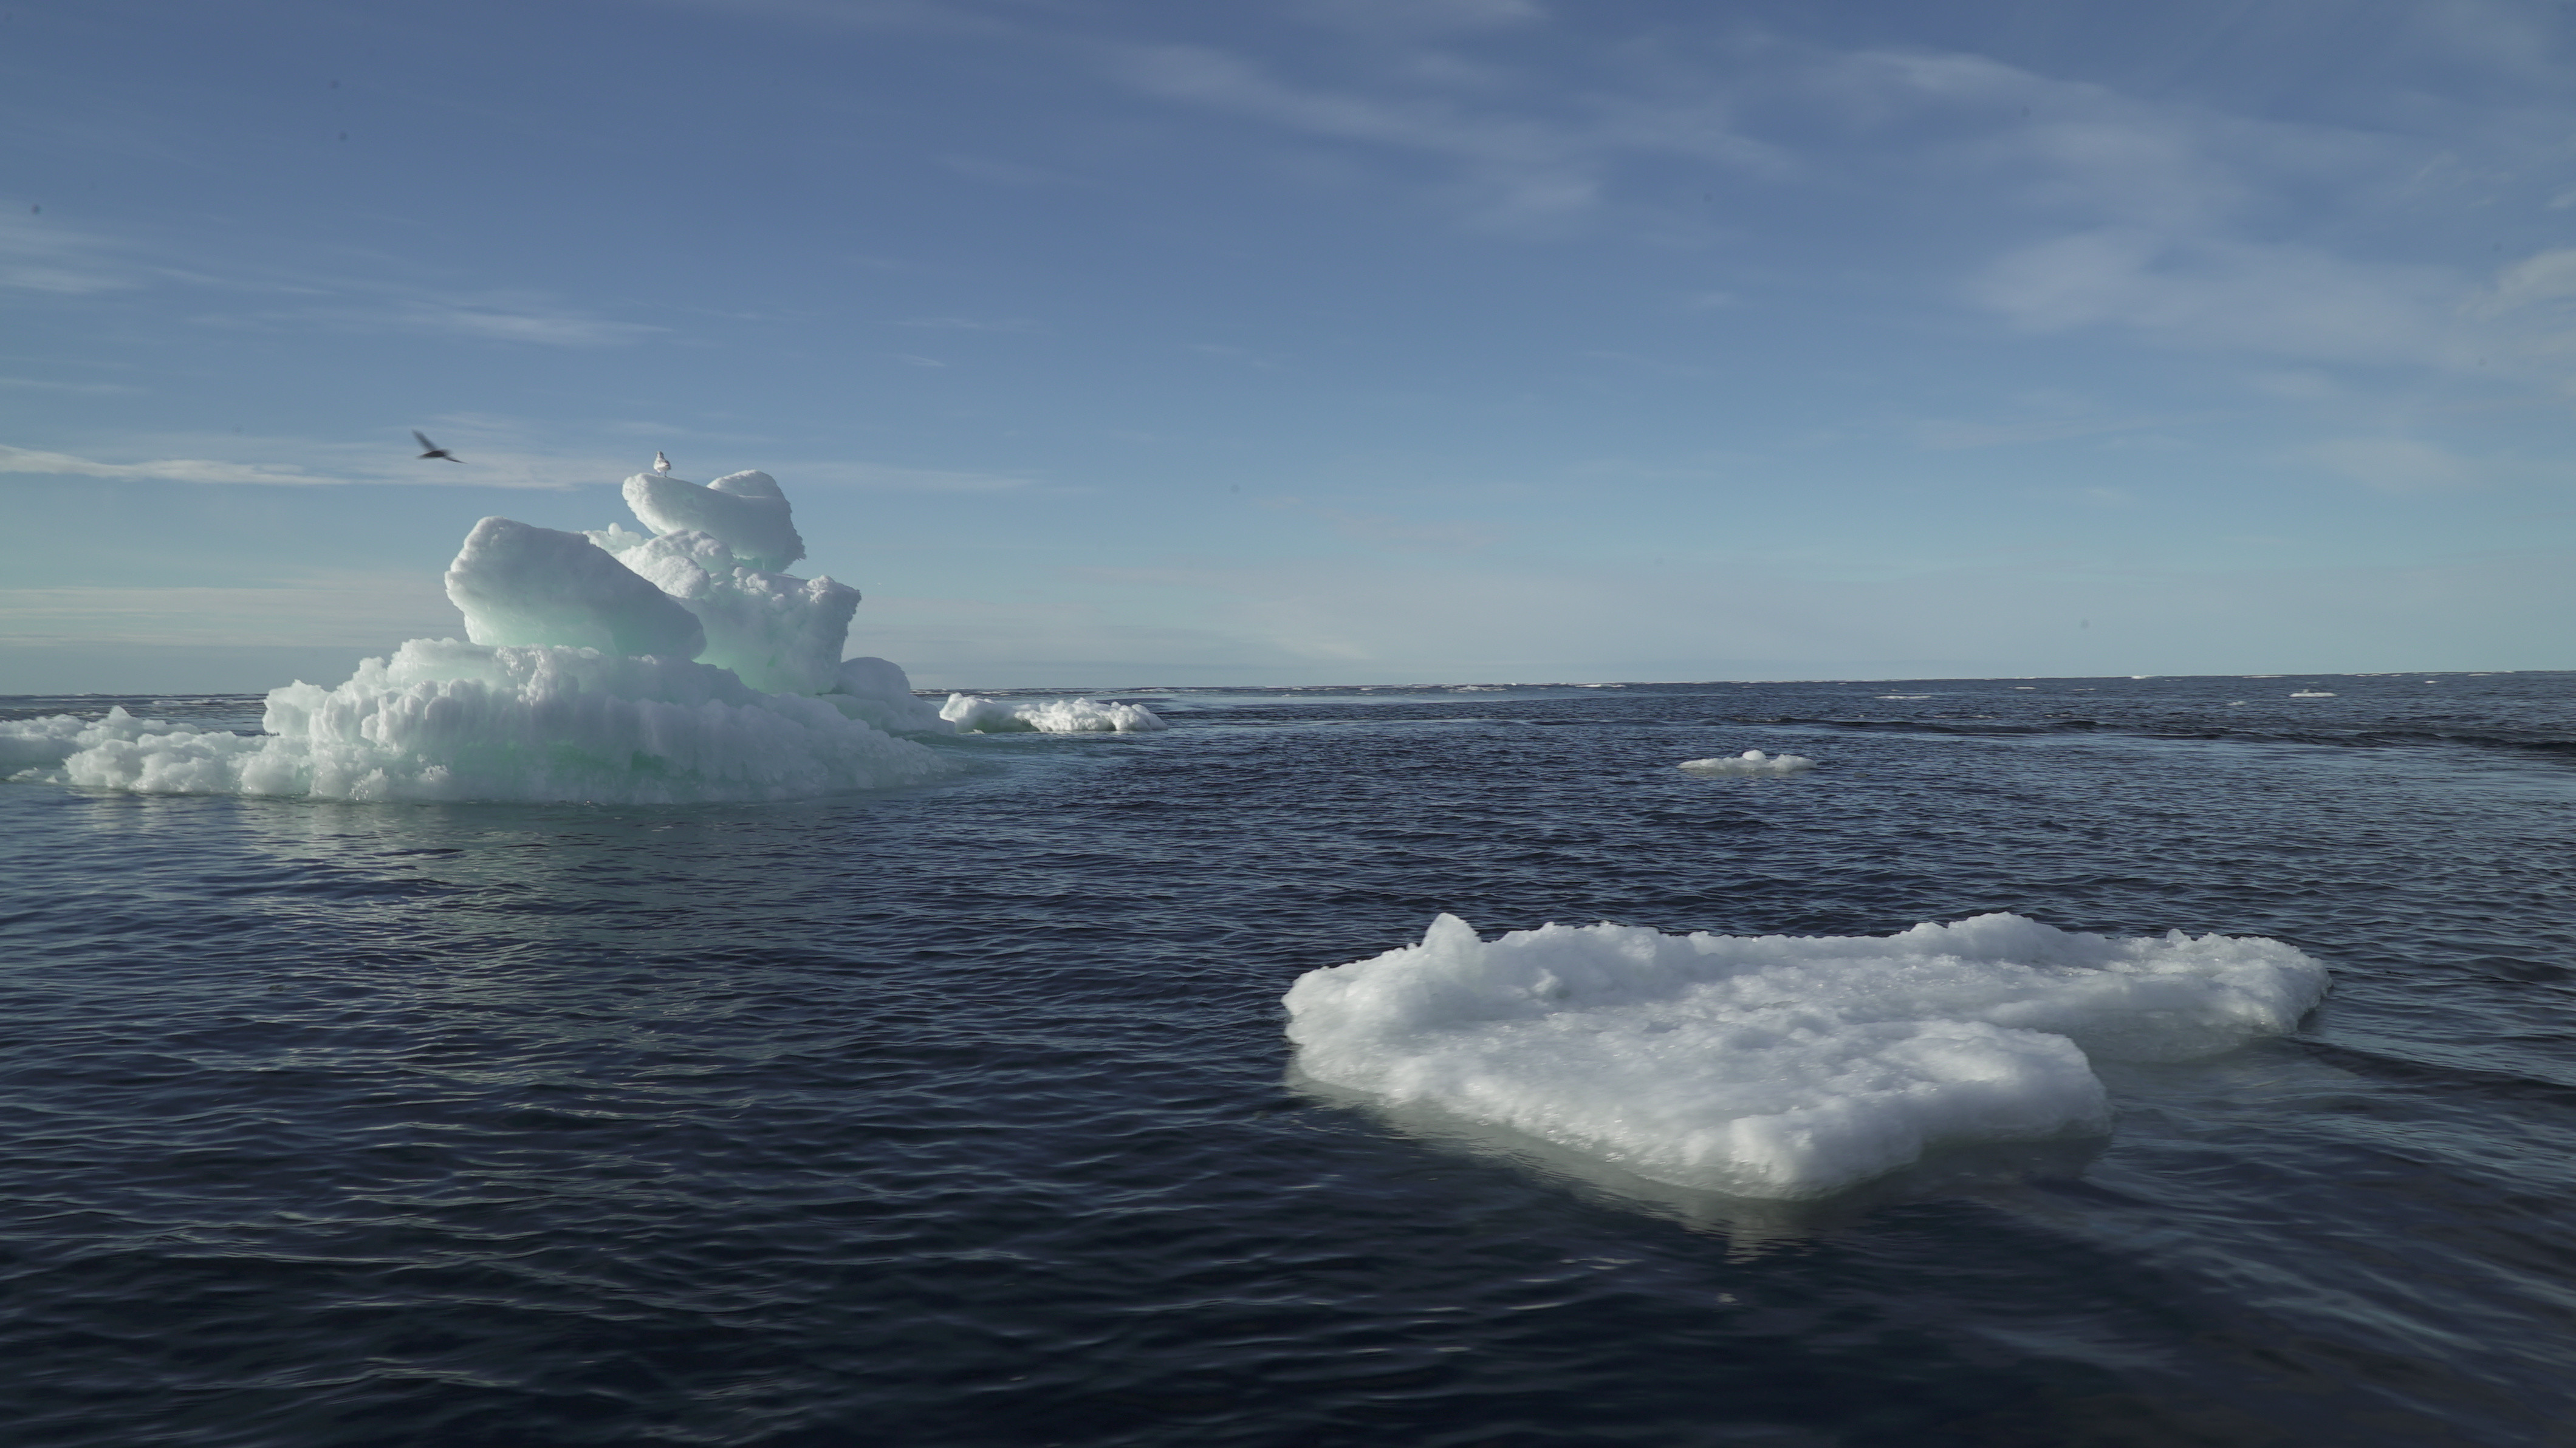 Arctic Ocean Multi-year sea ice global arming climate change Greenland